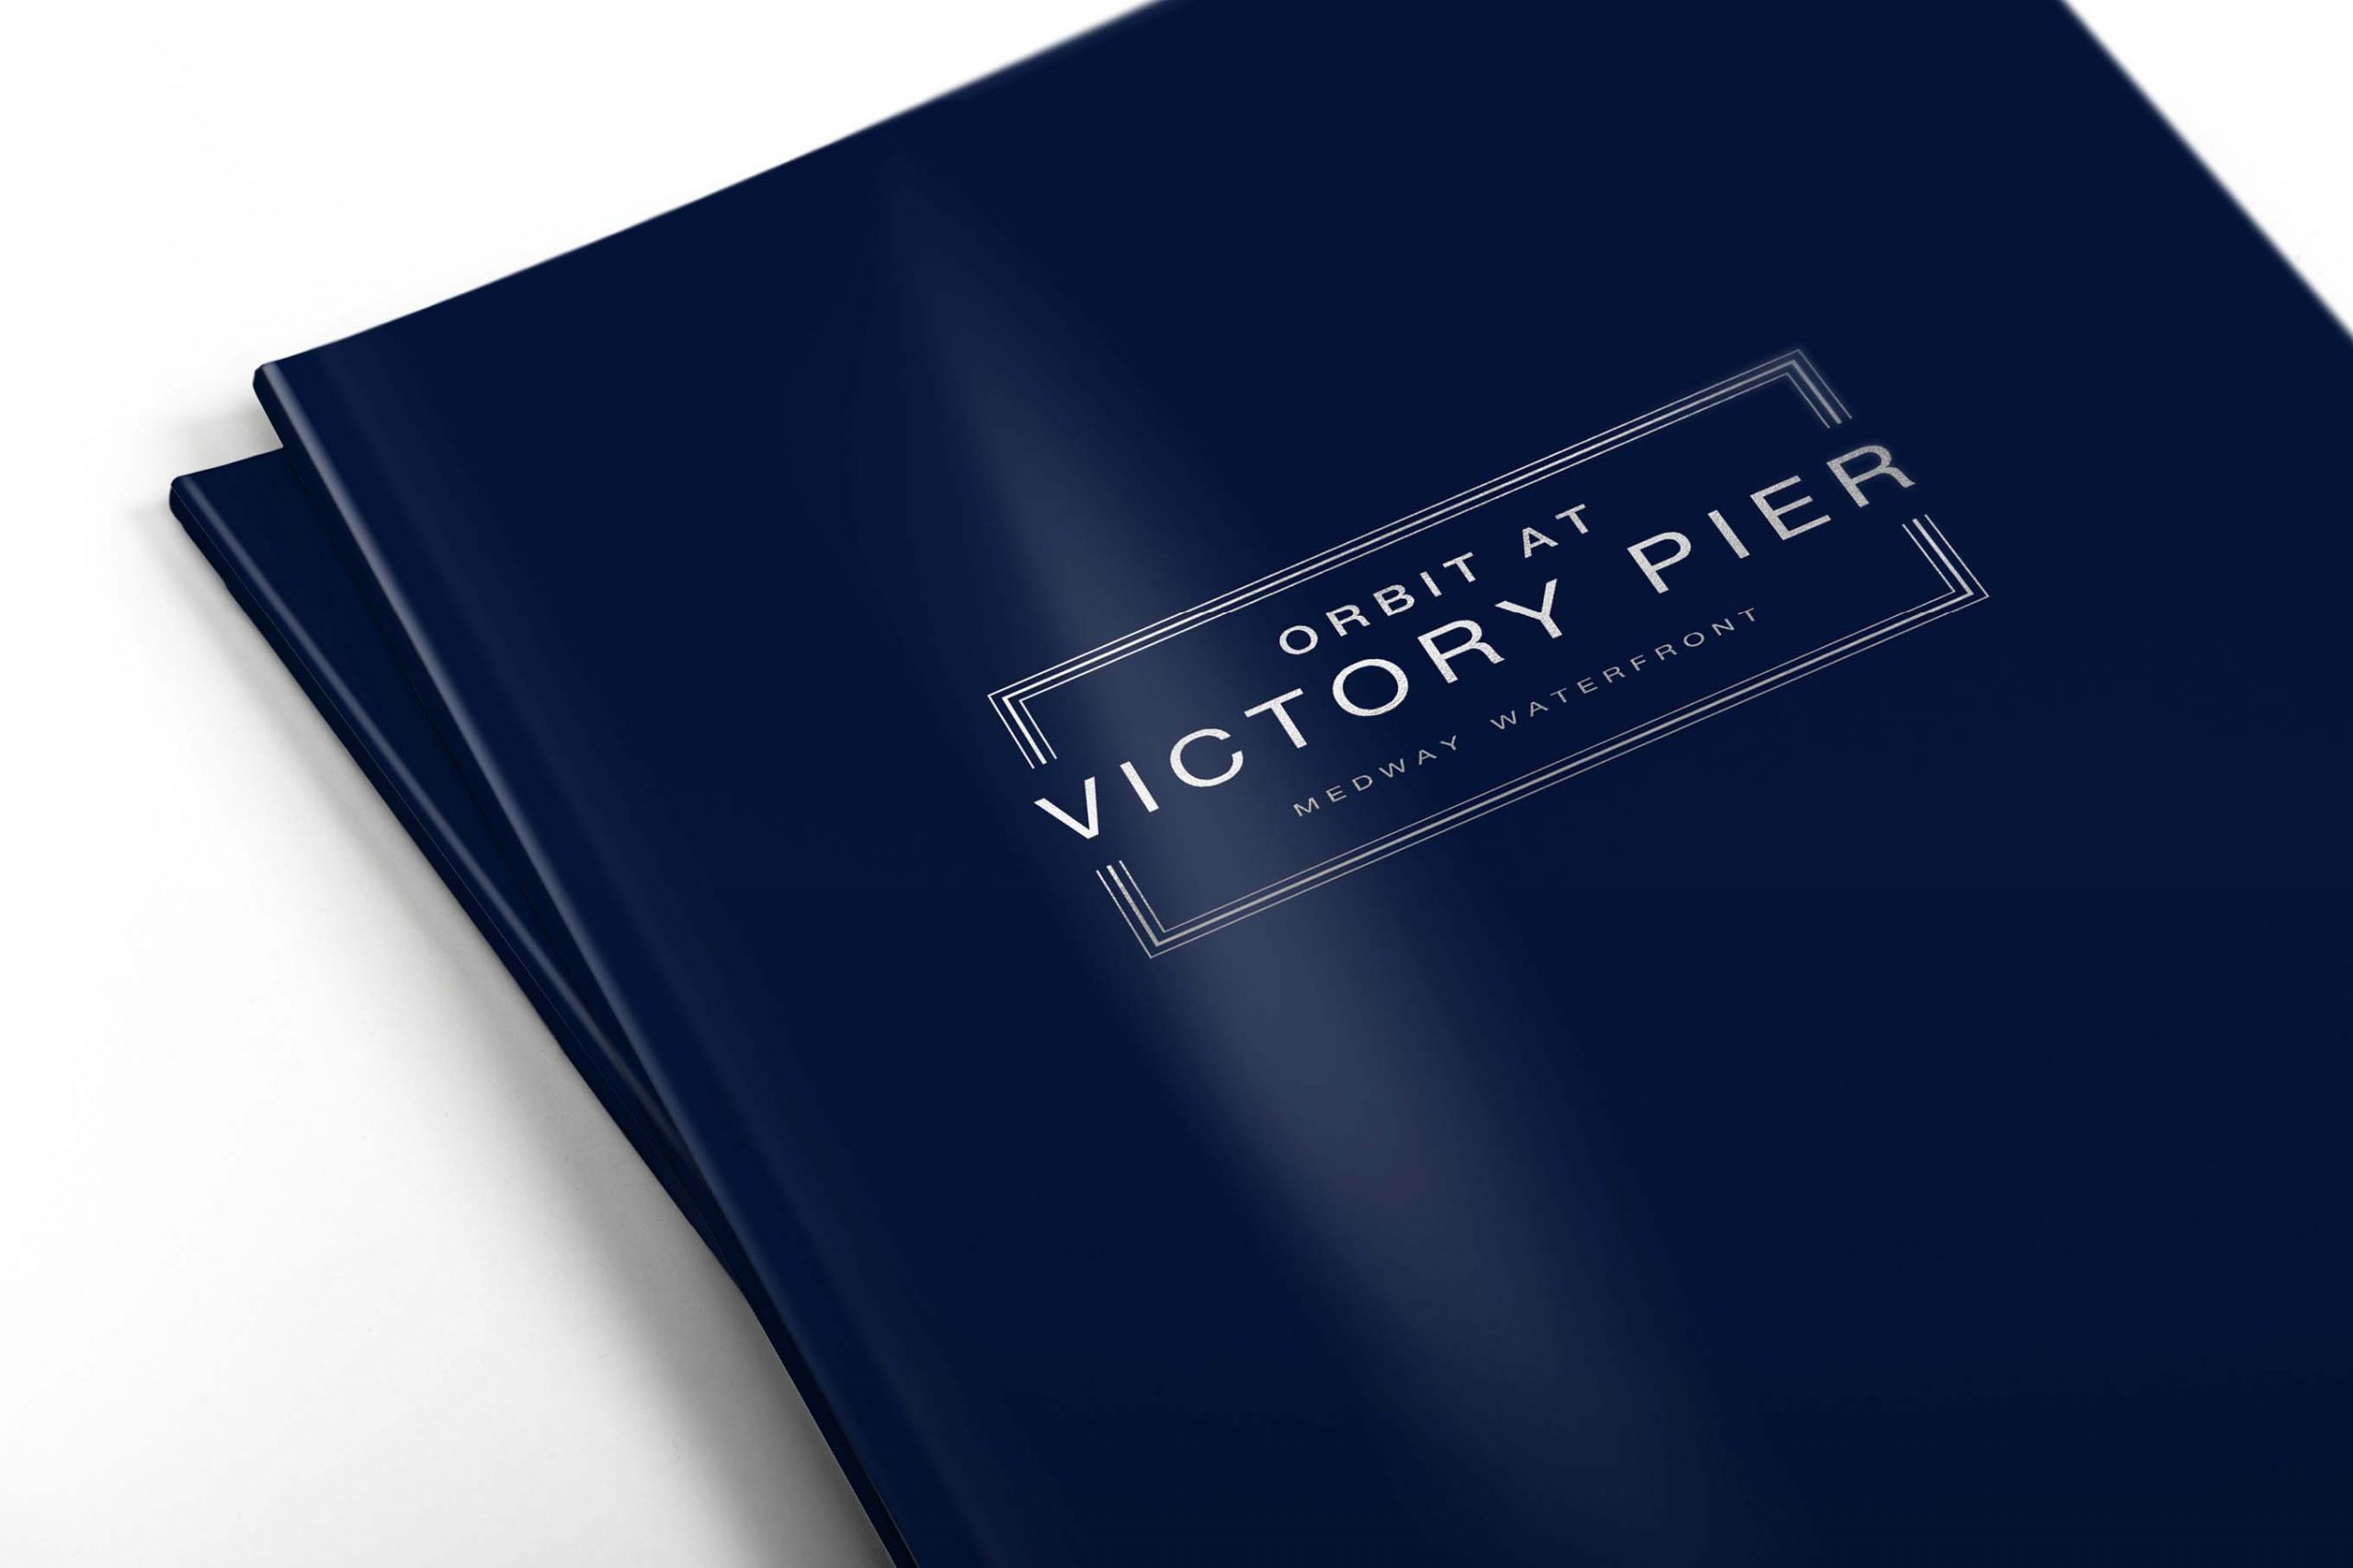 Victory Pier